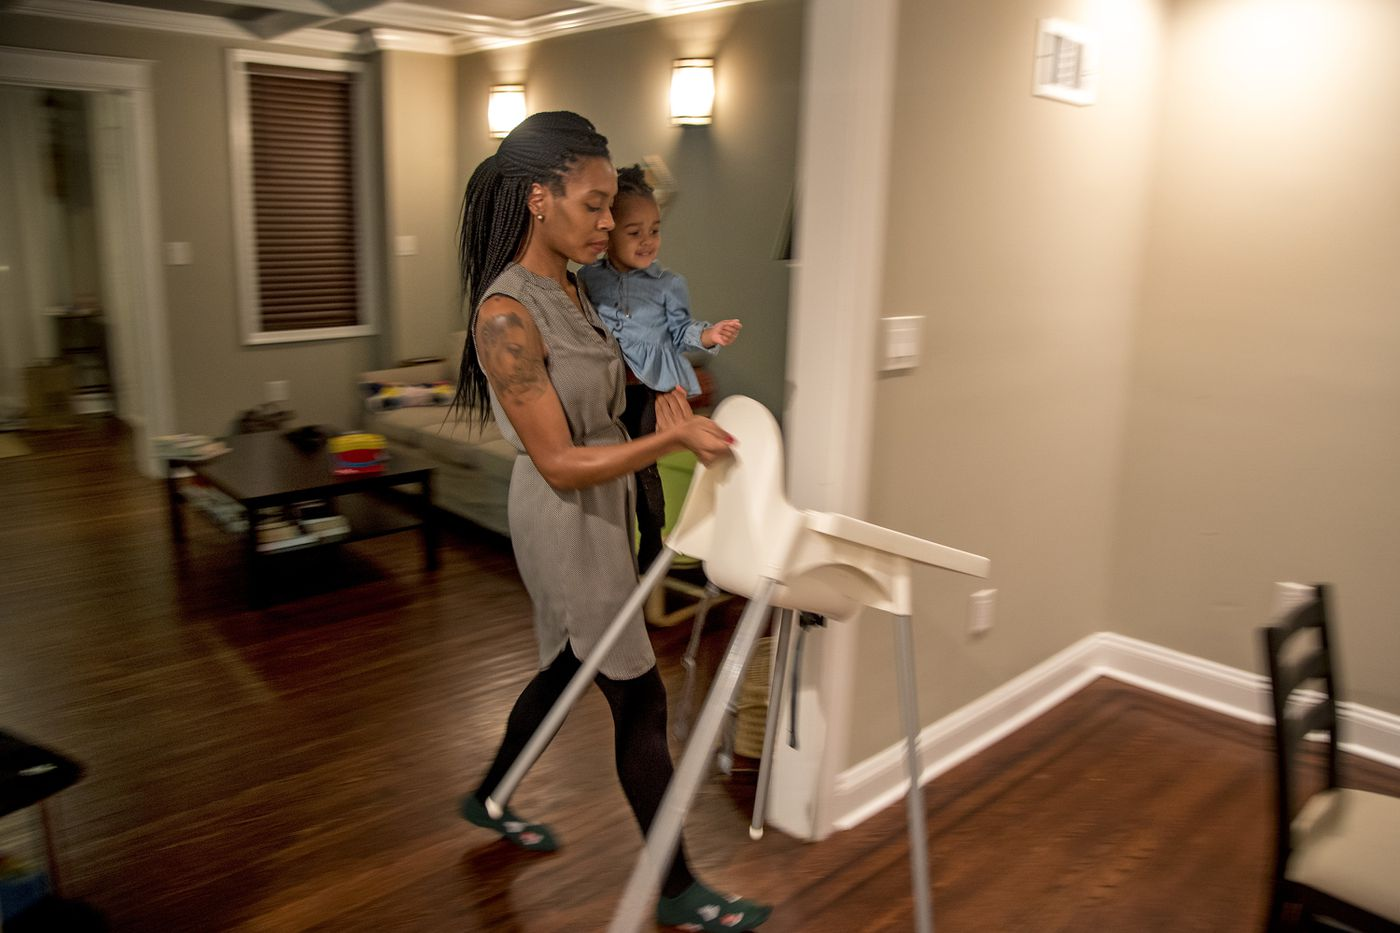 Auriel Dickey and her 2-year-old daughter Oma Smith prepare for dinner at home. After Oma's birth, Dickey experienced postpartum depression and eventually got connected to therapy through her employer.